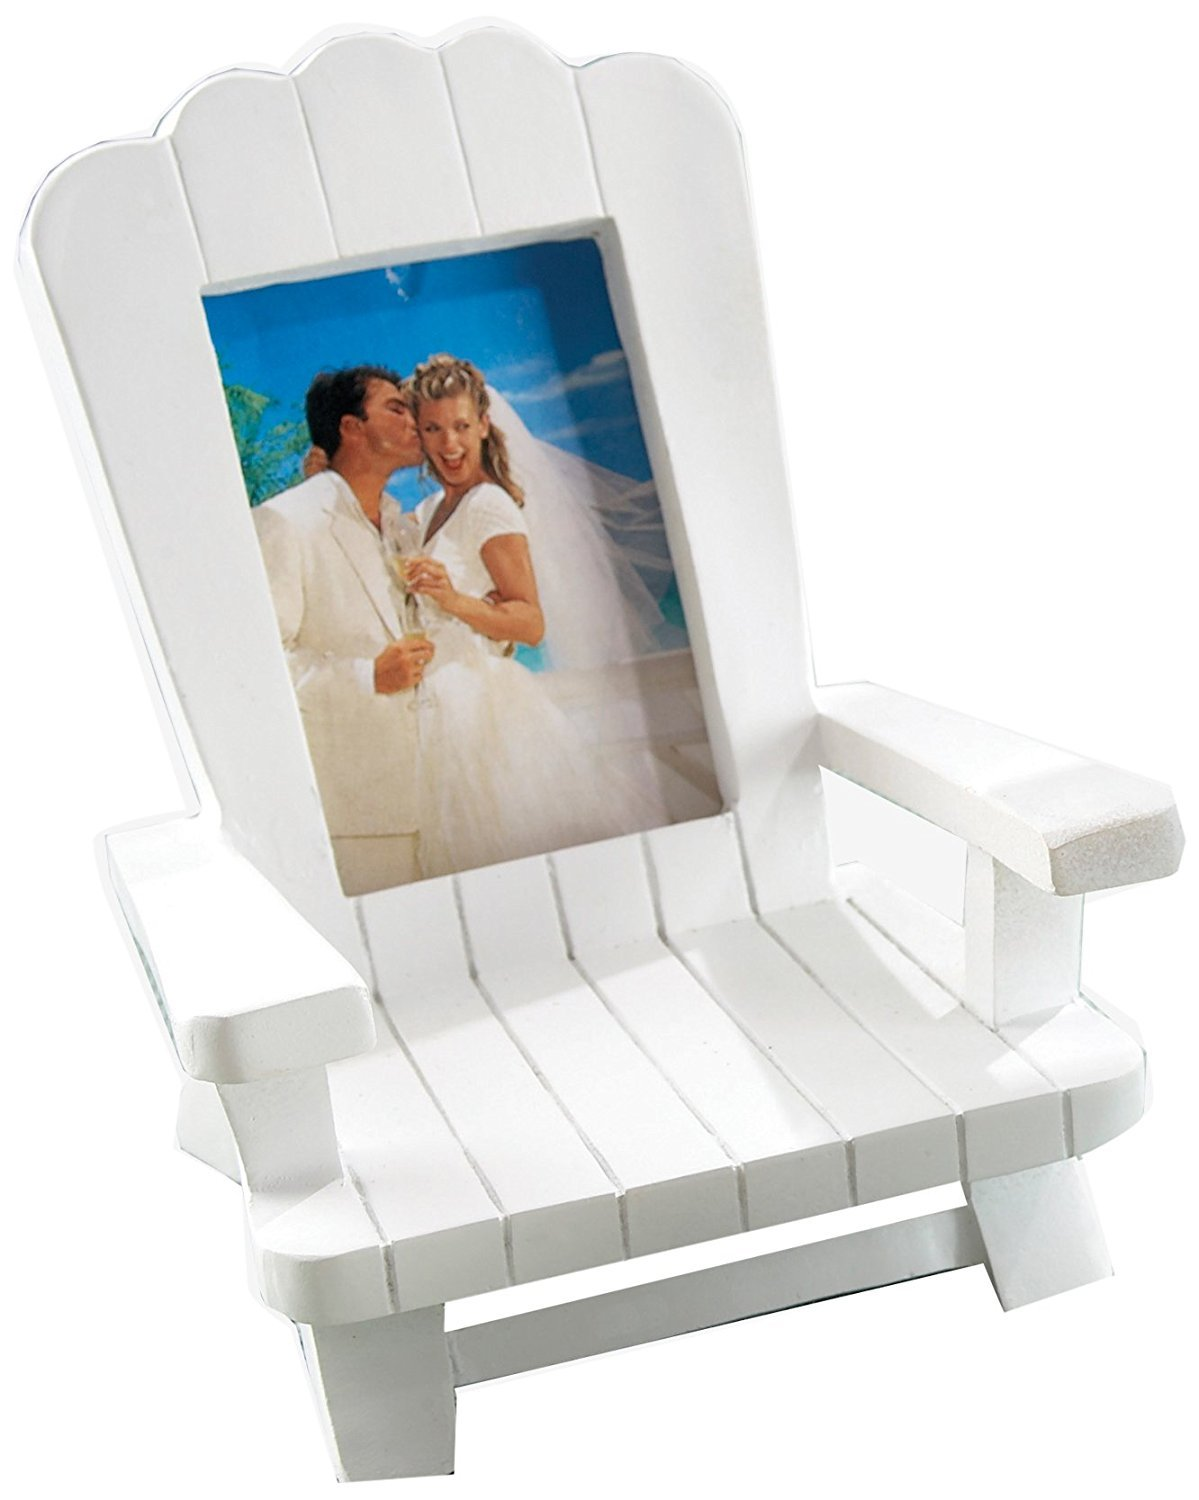 Beach Memories' Miniature Adirondack Chair Place Card (Set of 4) - 12 sets in total